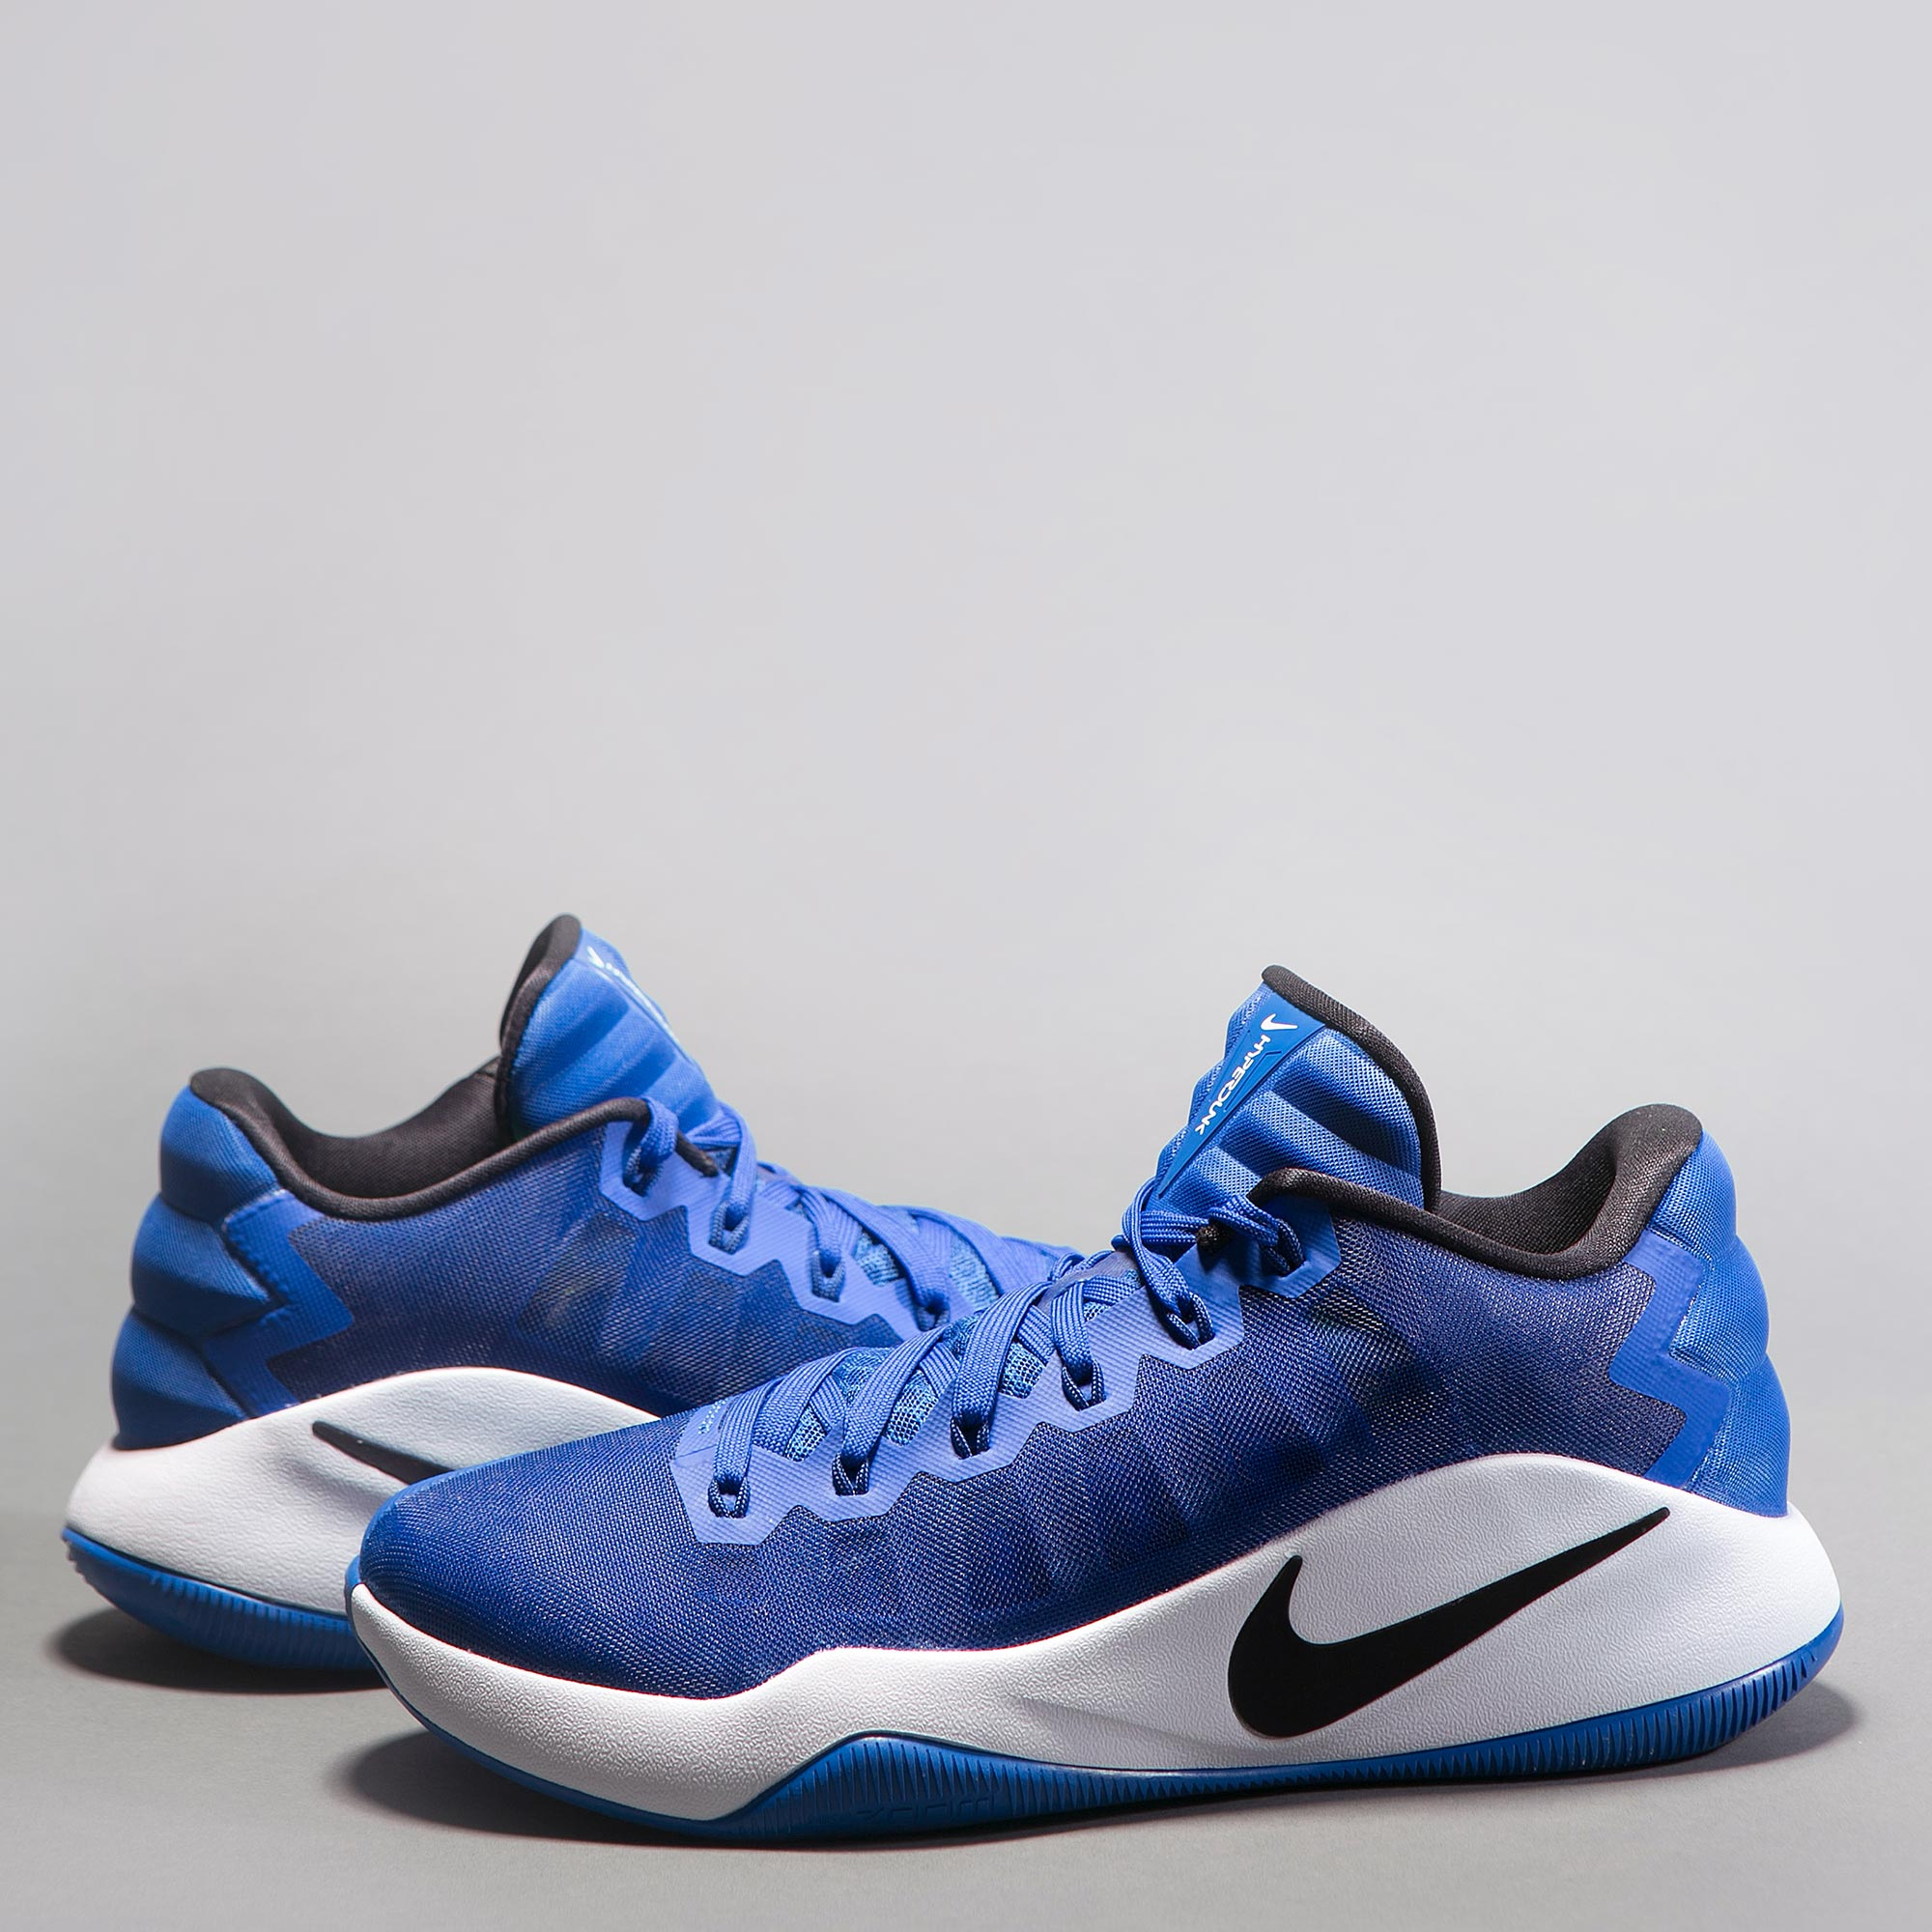 Nike Hyperdunk 2016 Low Basketball - Game Royal